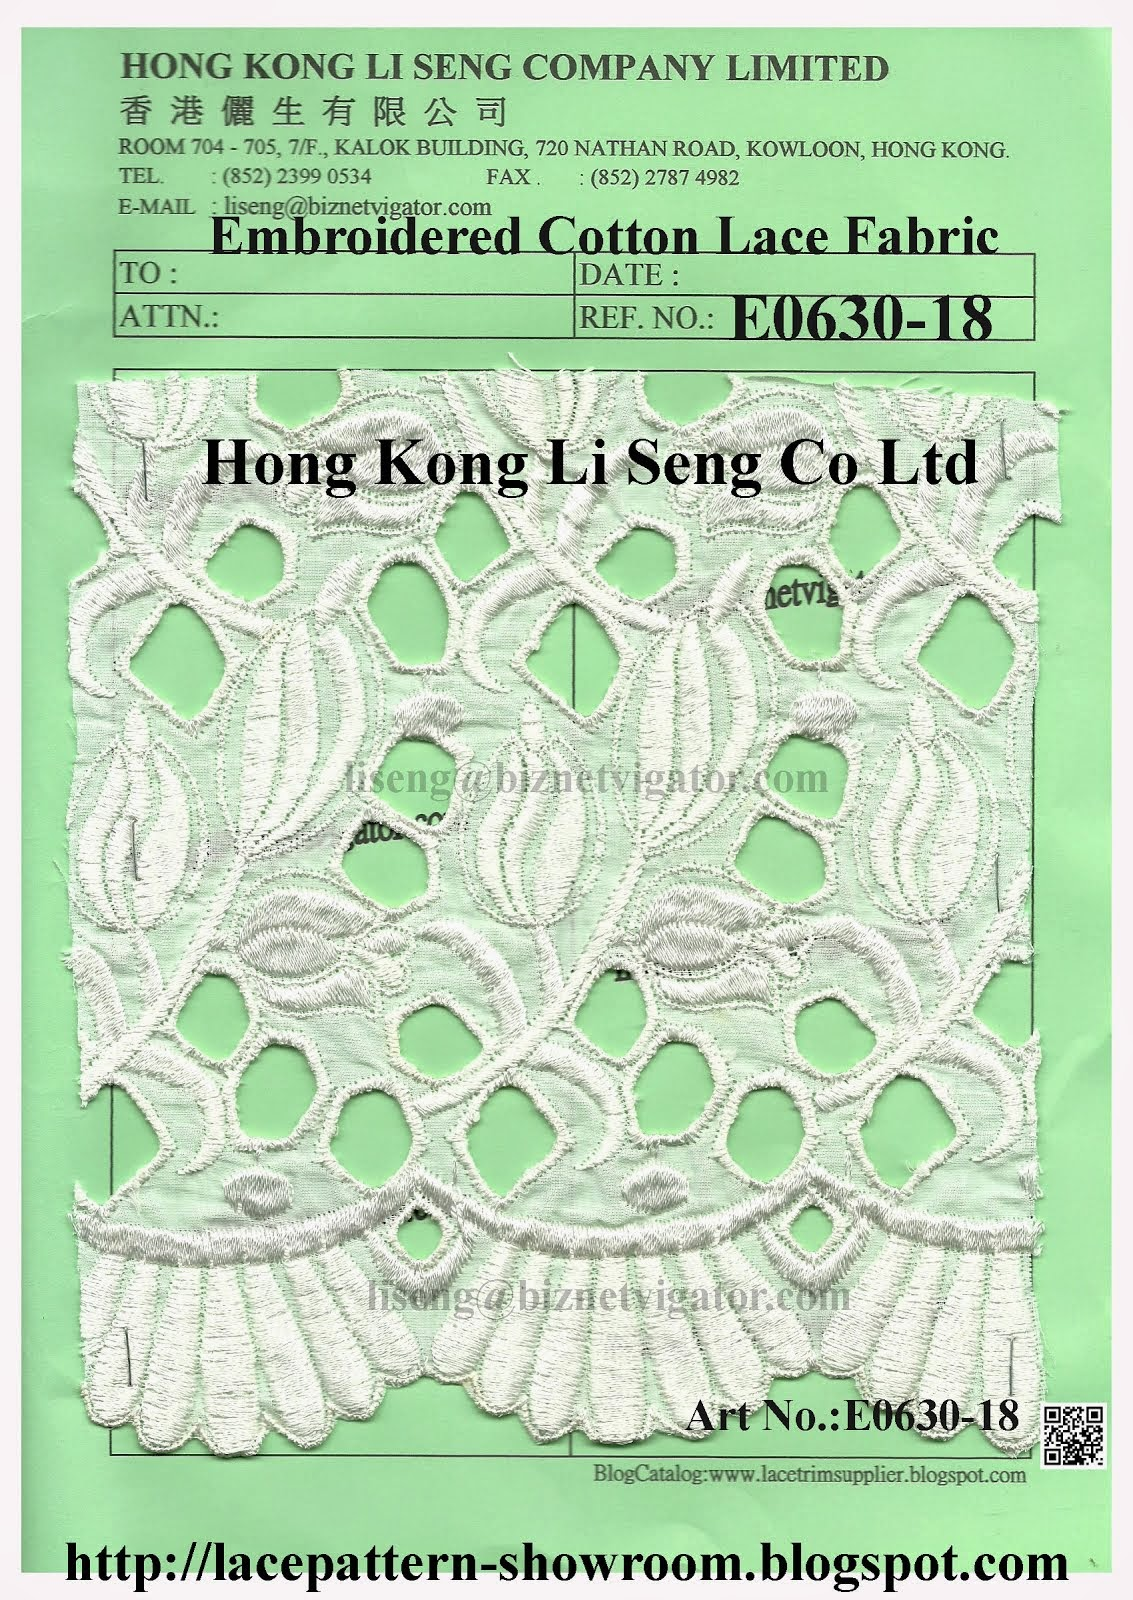 New Lace Pattern - Embroidered Cotton Lace Fabric Manufacturer Hong Kong Li Seng Co Ltd